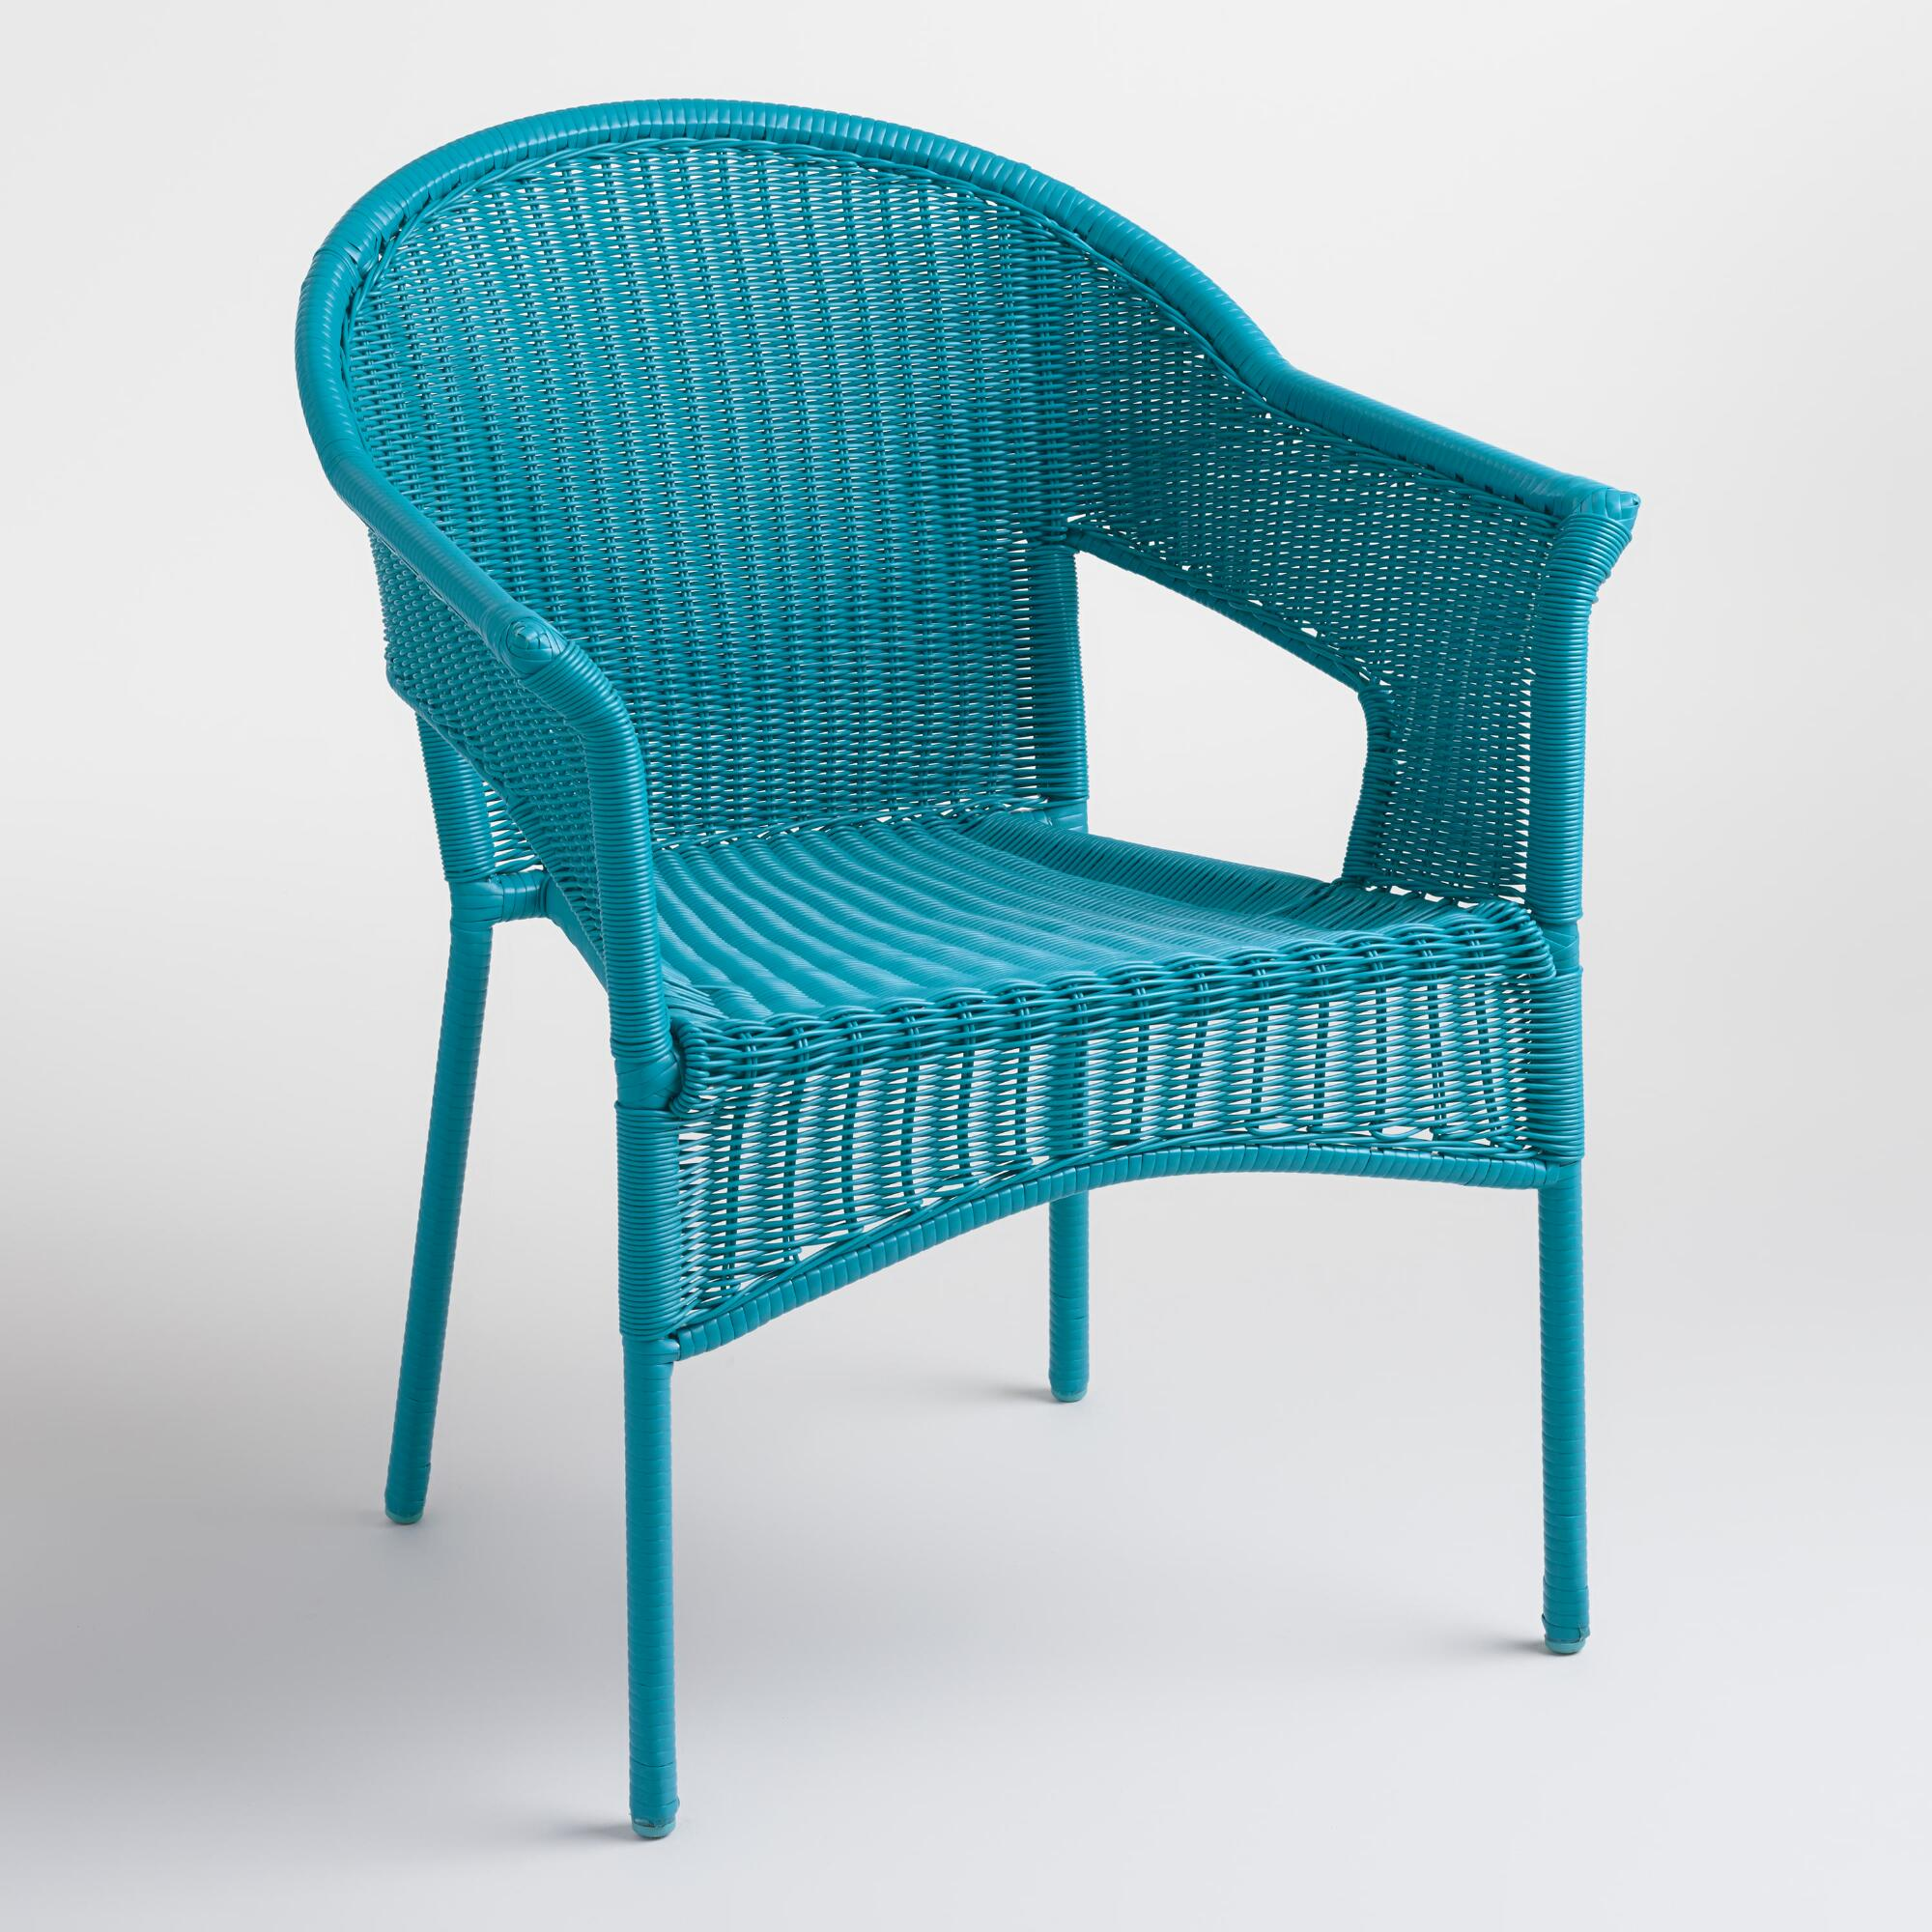 Surf Blue All Weather Wicker Stacking Tub Chairs Set of 2 | World Market